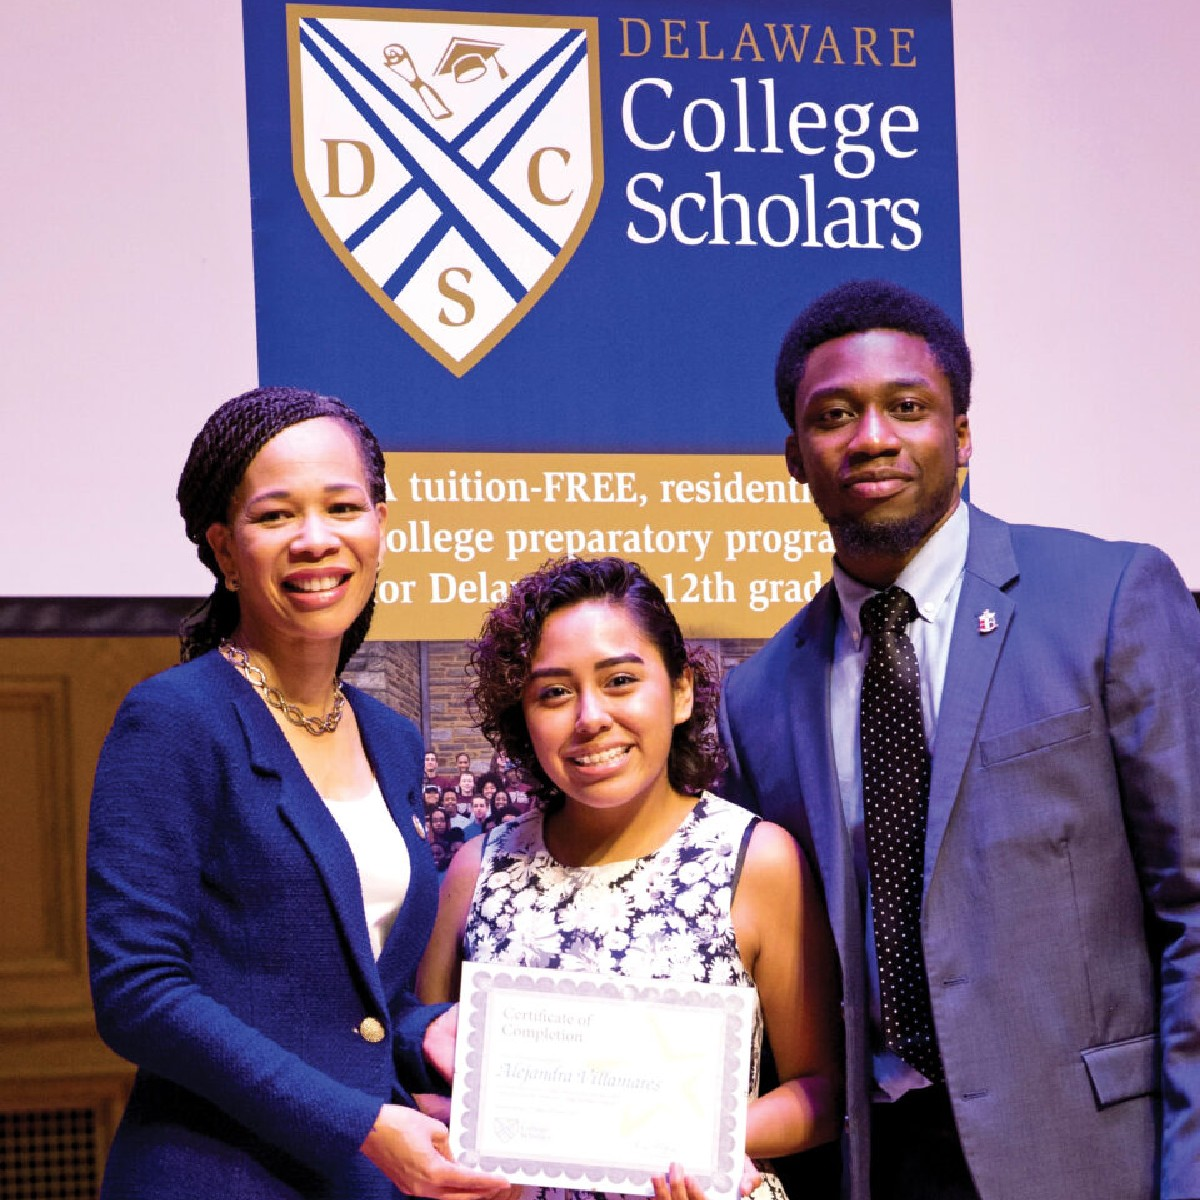 """test Twitter Media - The Delaware College Scholars program, founded by Tony Alleyne '05, is helping underserved students achieve success at Wesleyan and beyond.  """"[The scholars] are resilient,"""" says Alleyne. """"They're trailblazers.""""  https://t.co/xHdHY8zl6J https://t.co/mezC2oQFma"""